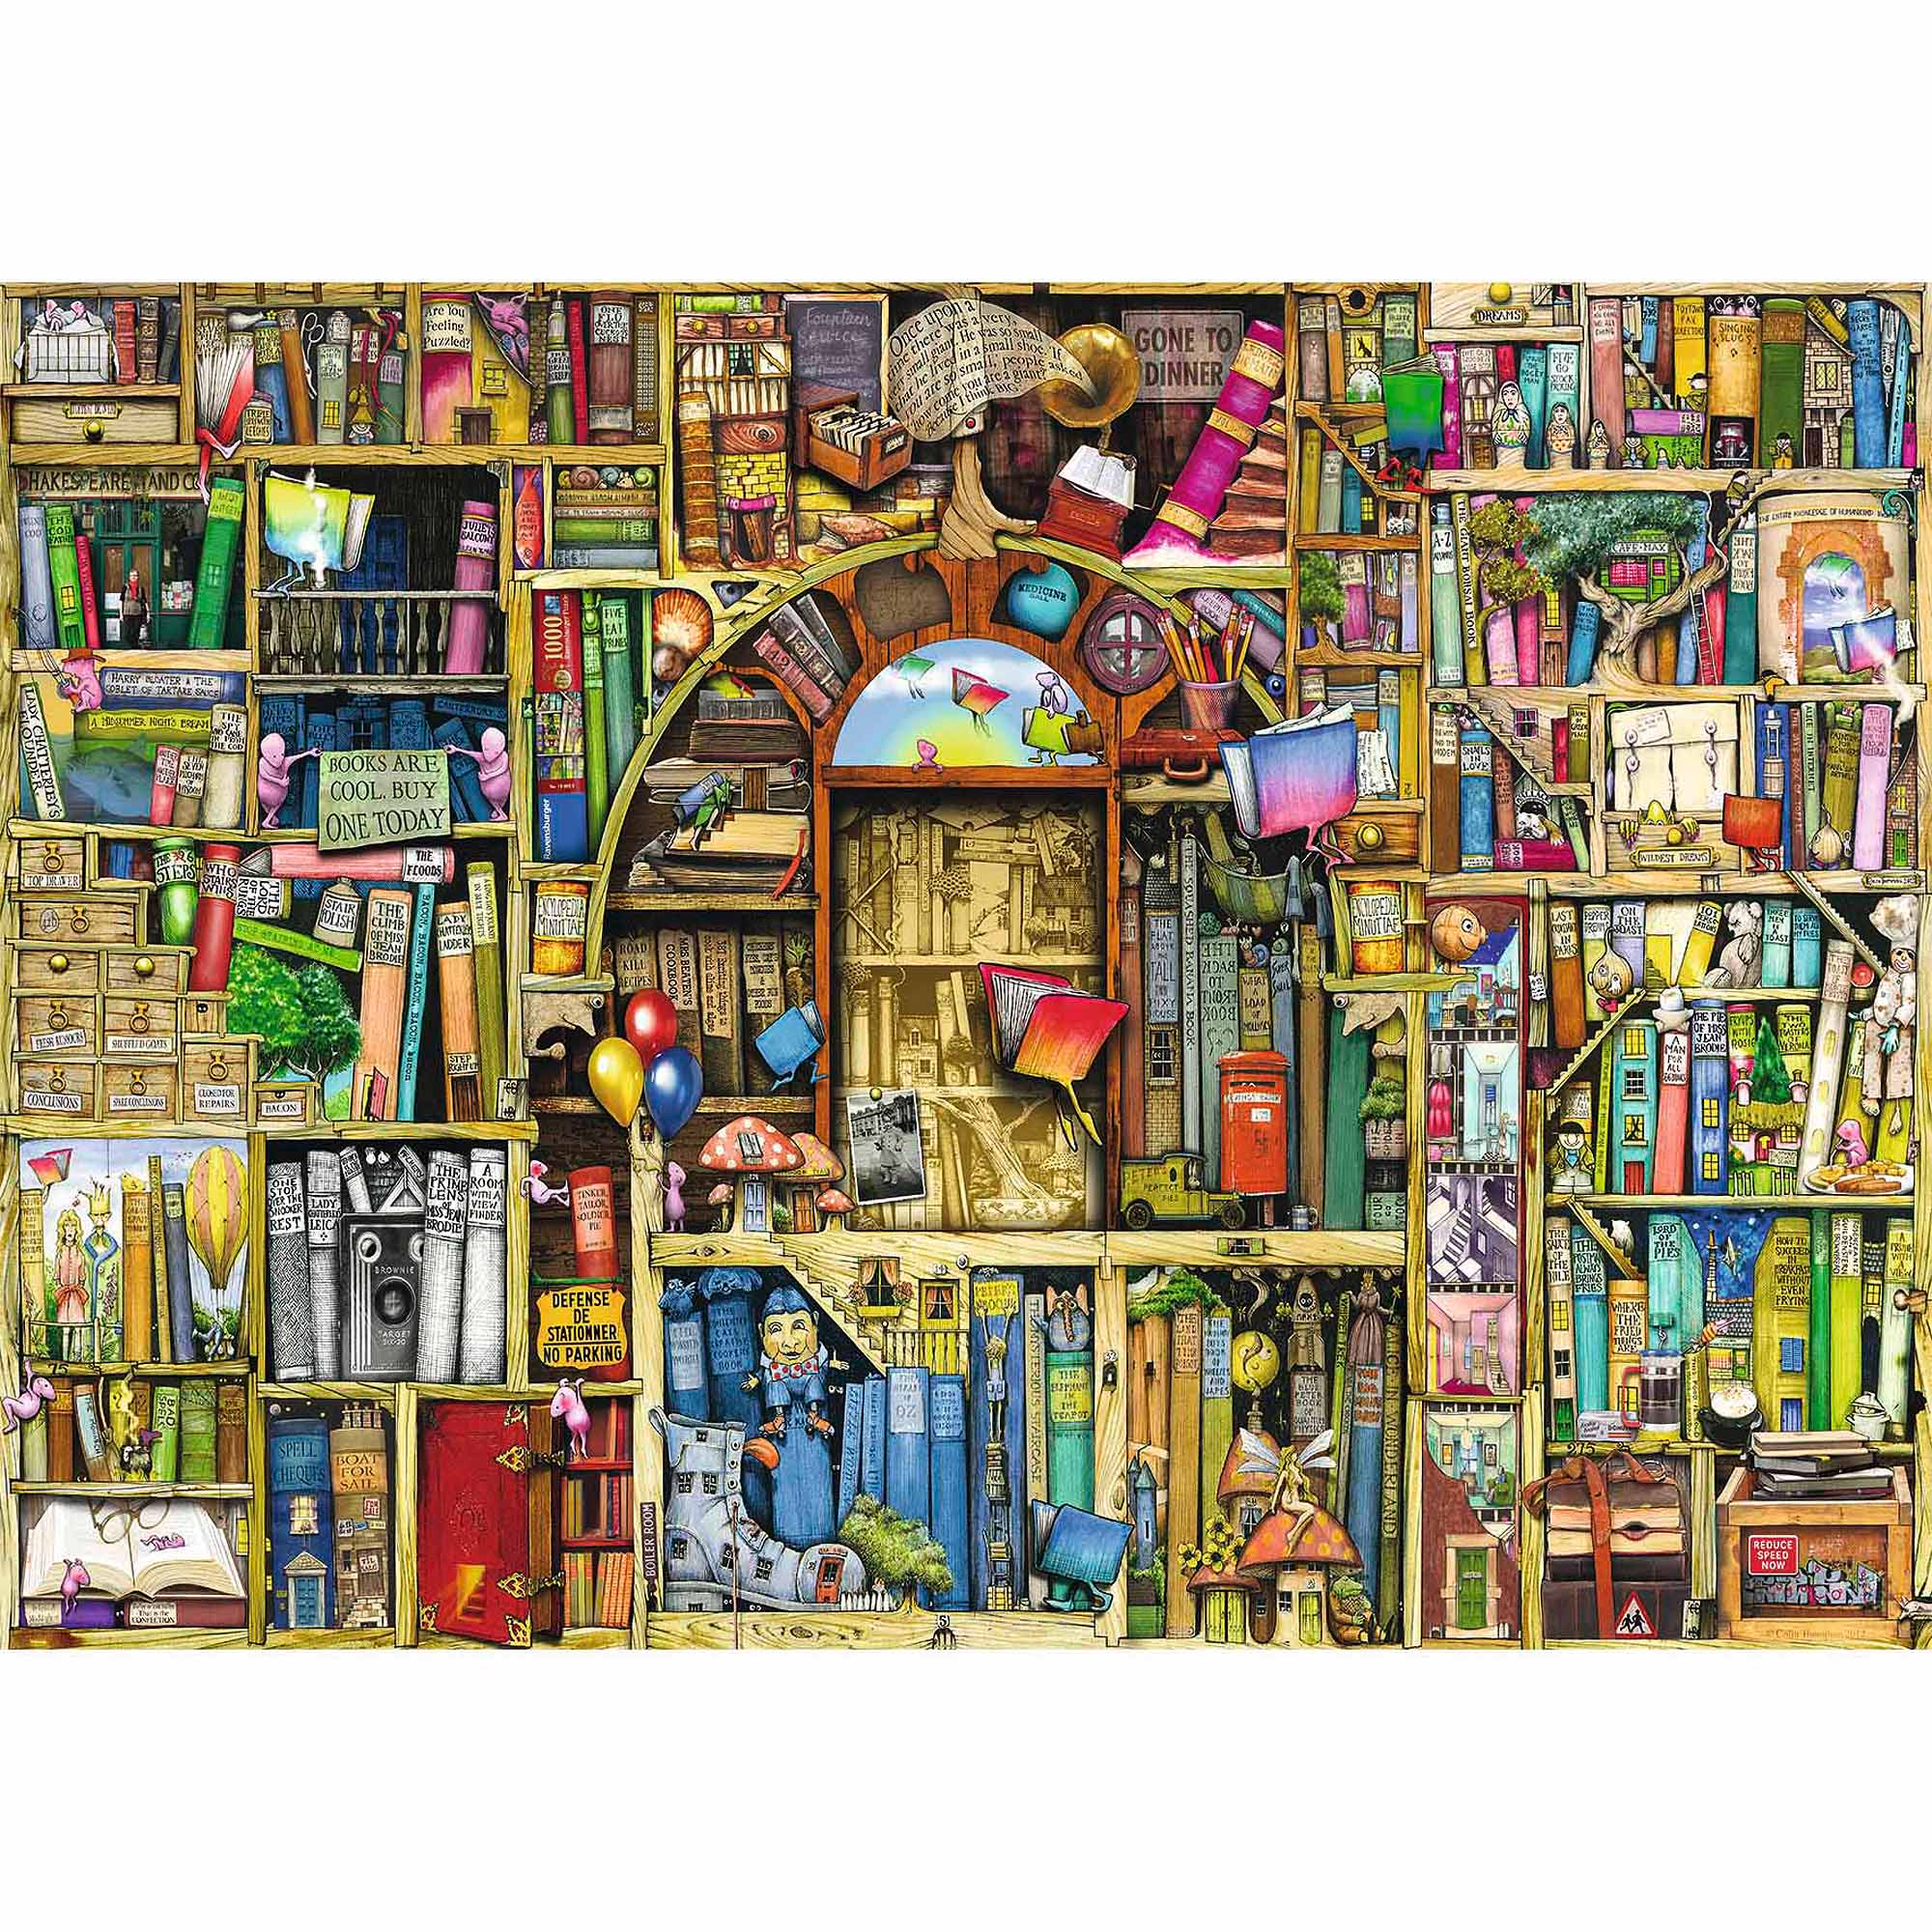 Bizarre Bookshop 2 Puzzle, 1,000 Pieces